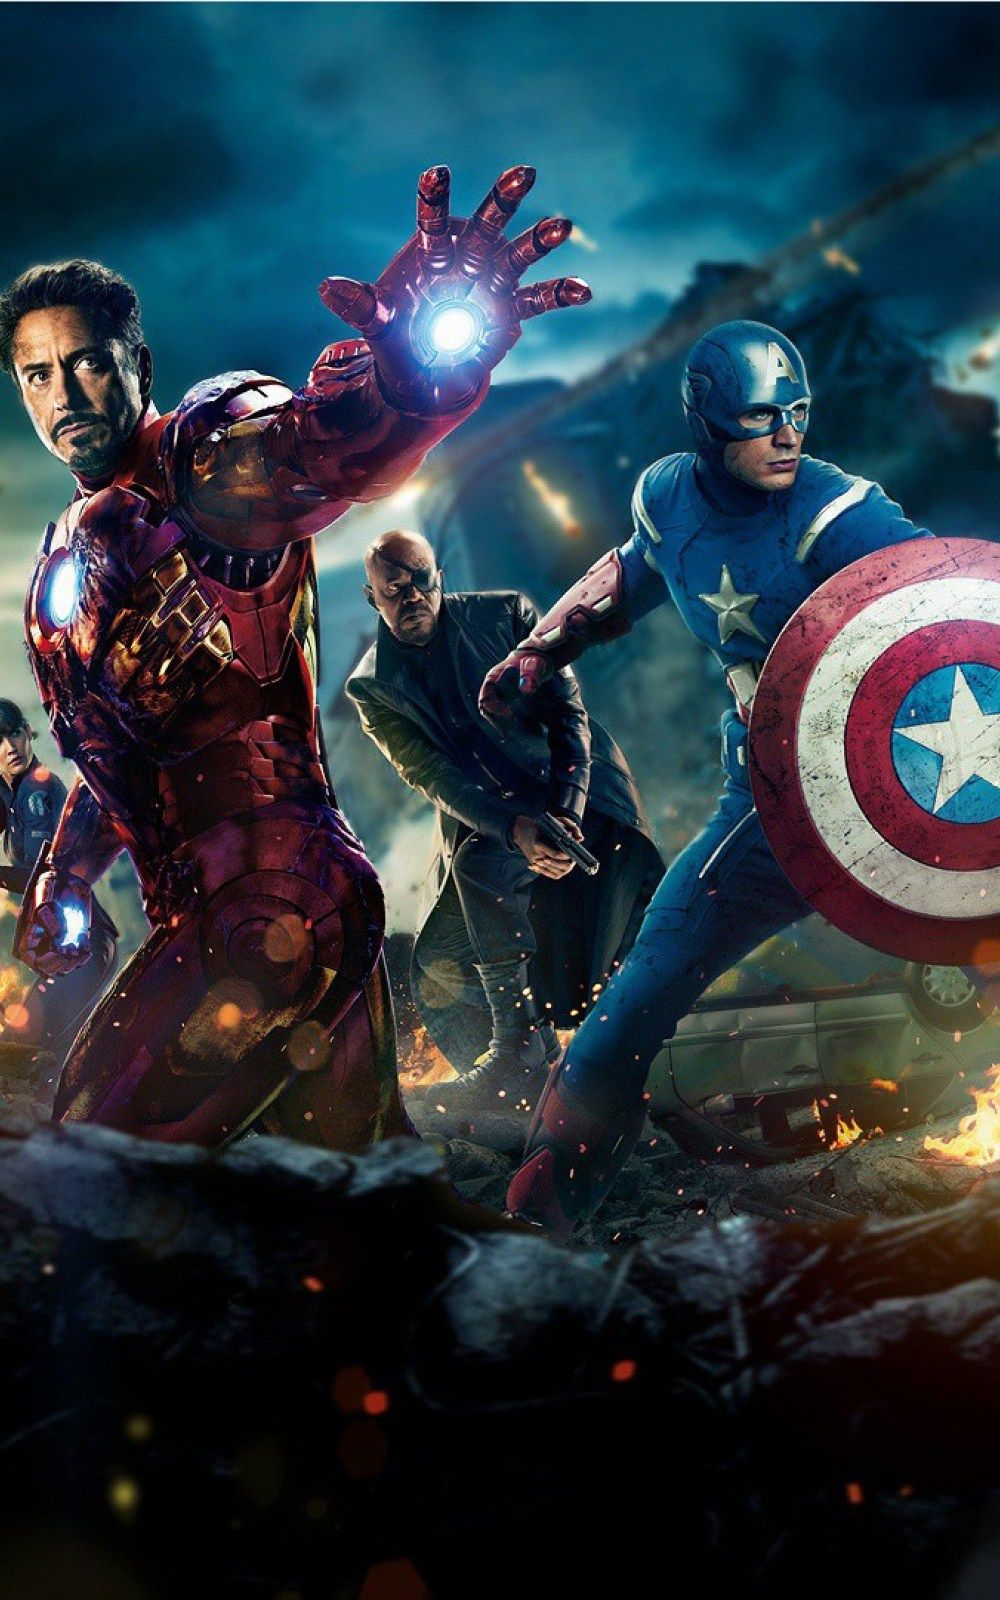 Download Wallpaper Mobile Avengers - 86df57e89314e9b5c7081fab64321b8b  Perfect Image Reference_889743.jpg